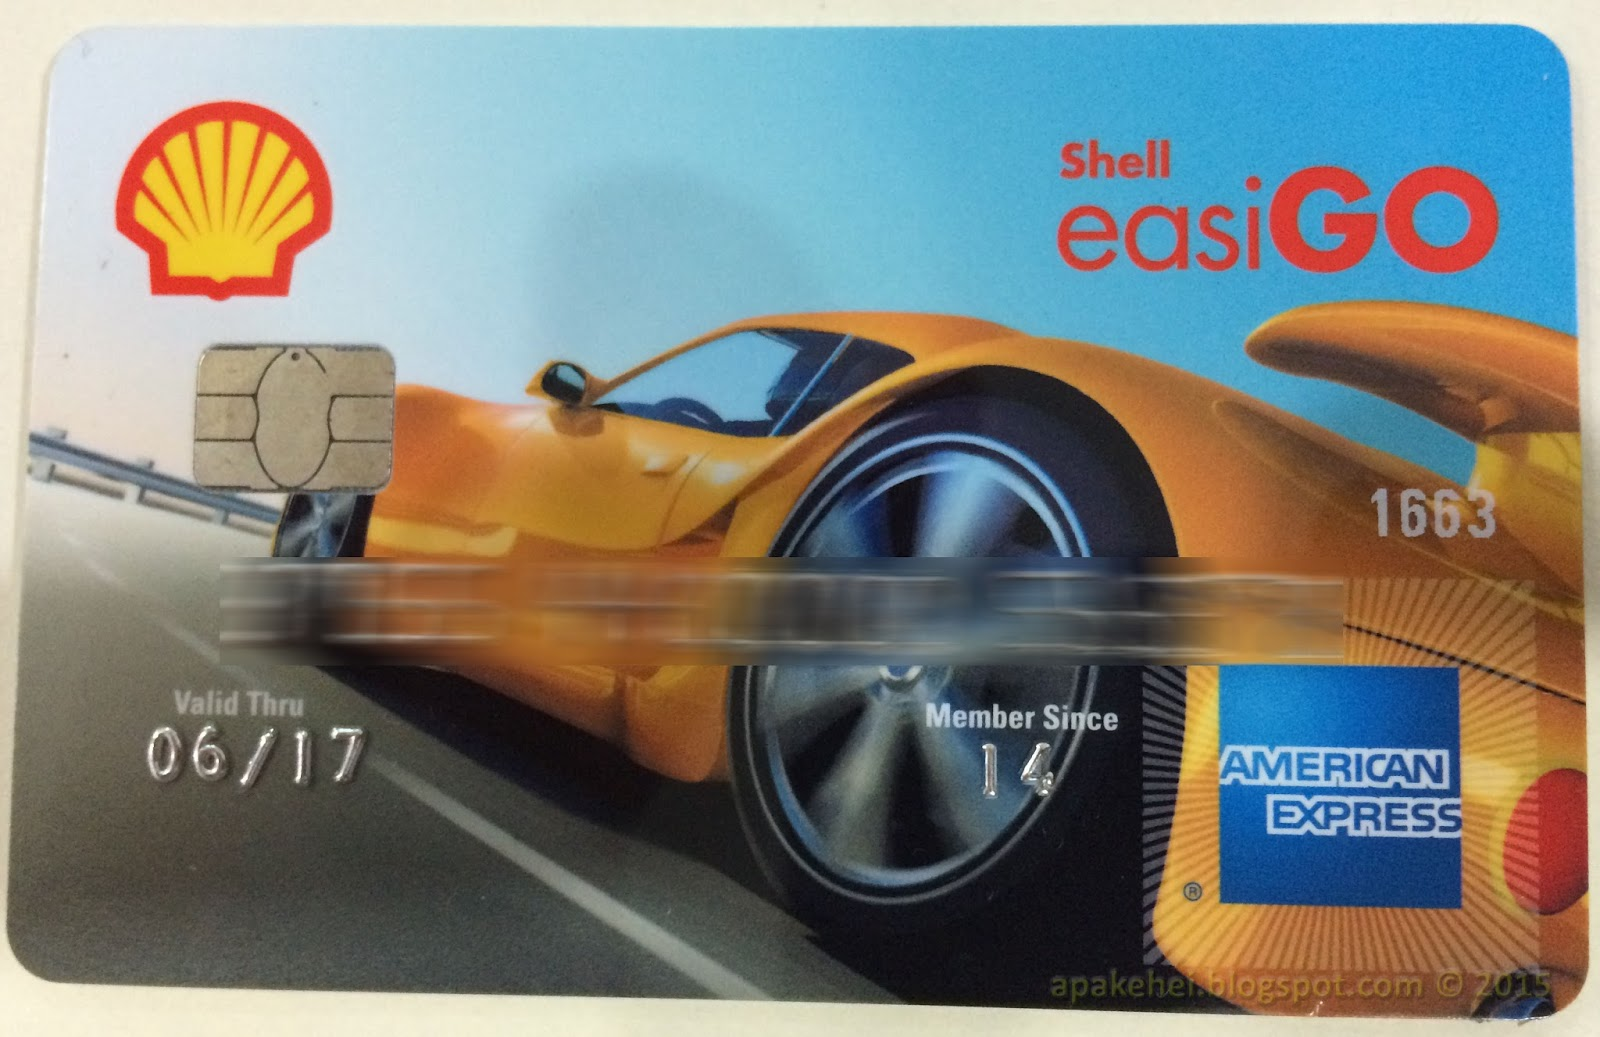 Shell easiGO Pre-Paid Card